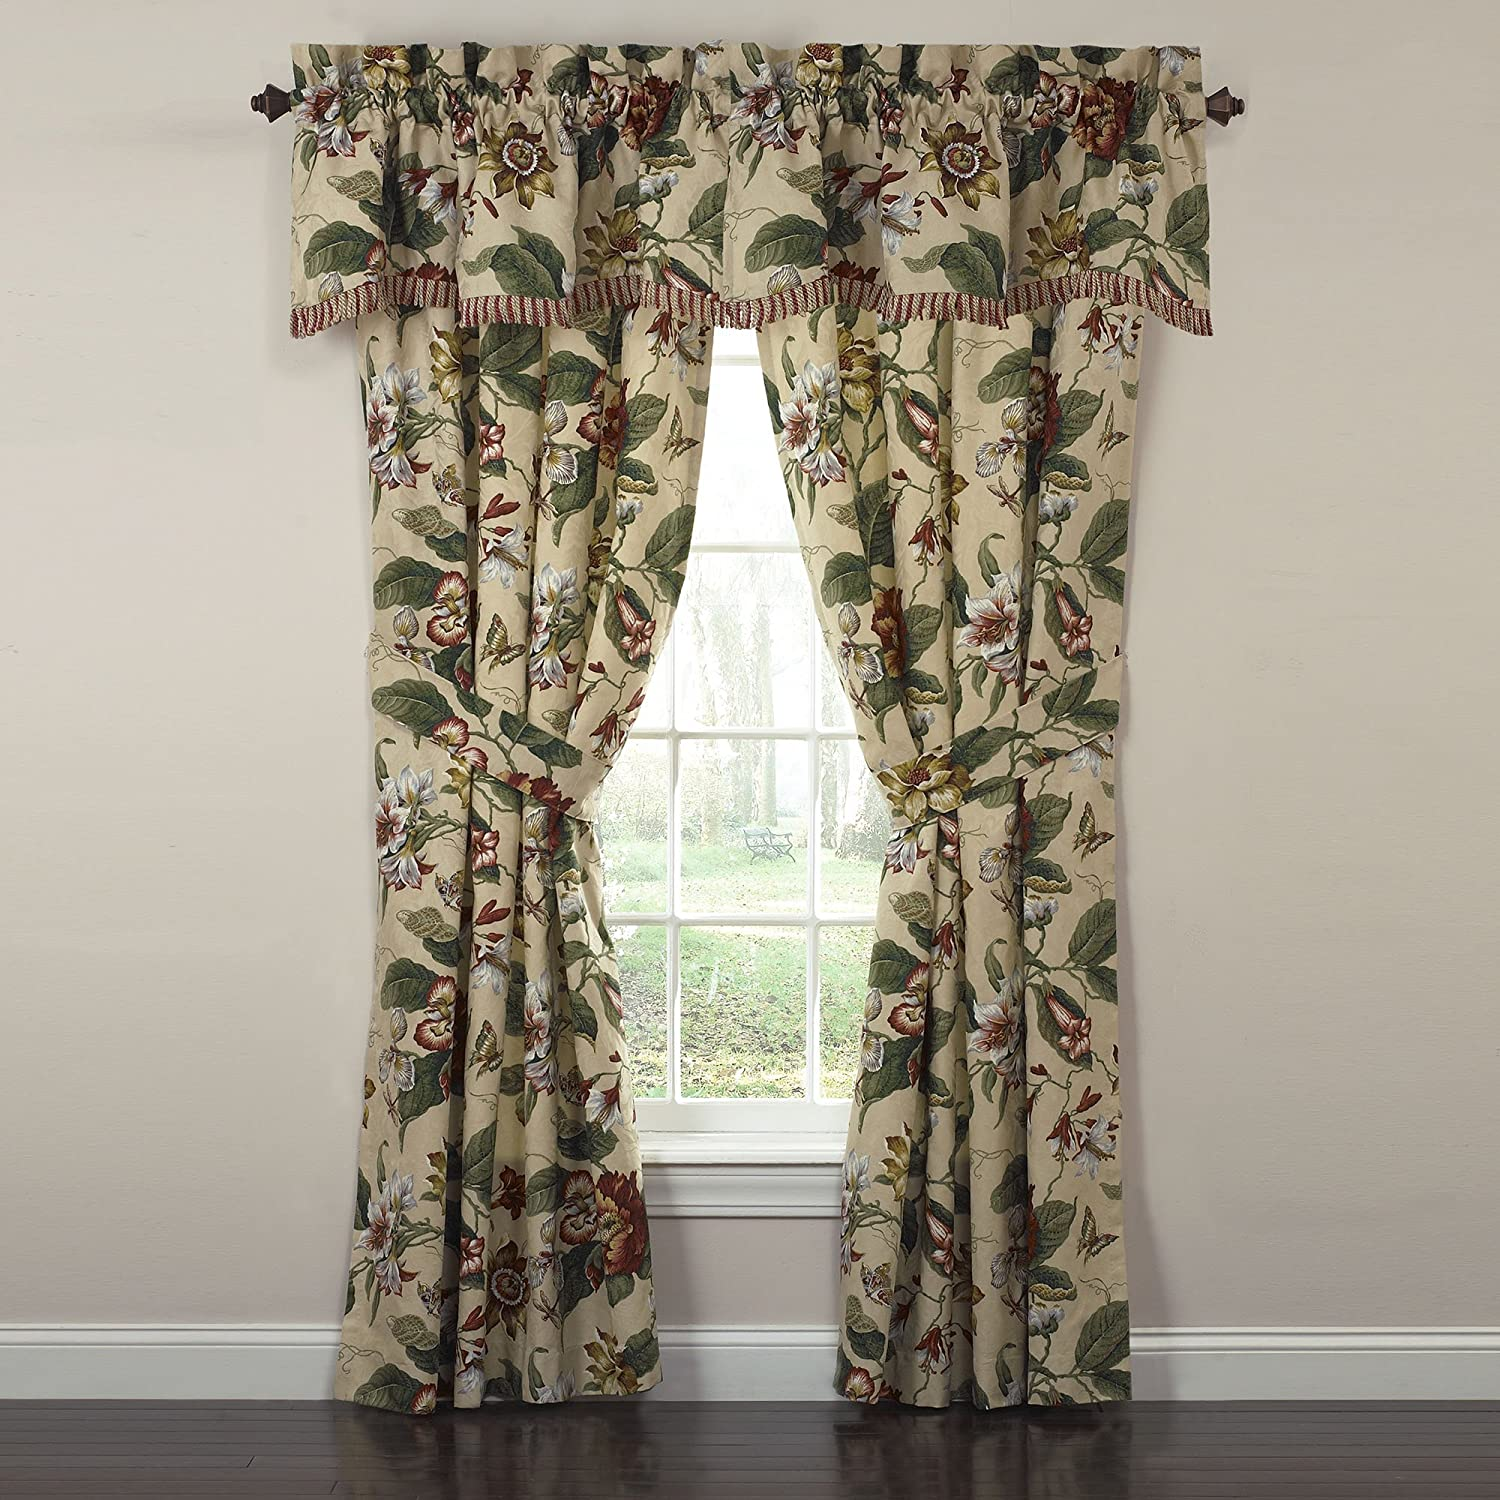 drapes window com springs lined valance waverly with cm wide dp inch long laurel x home amazon kitchen tgelncl